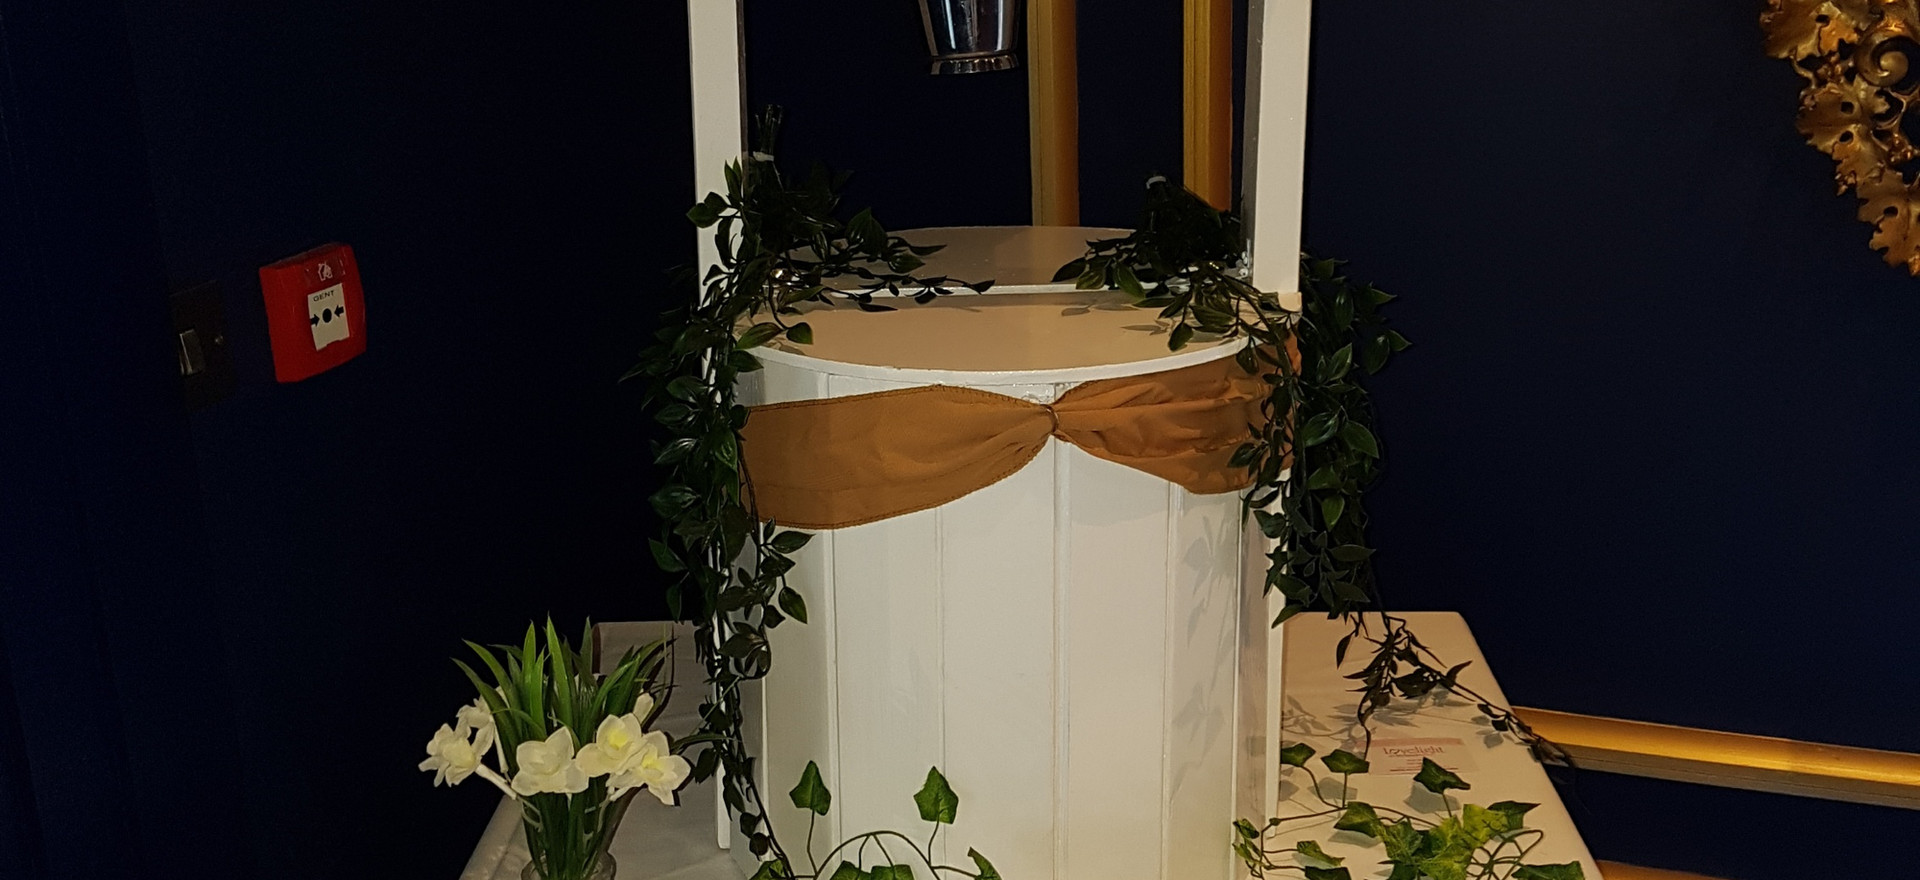 Our Wishing Well can be personalised to suit your desires!